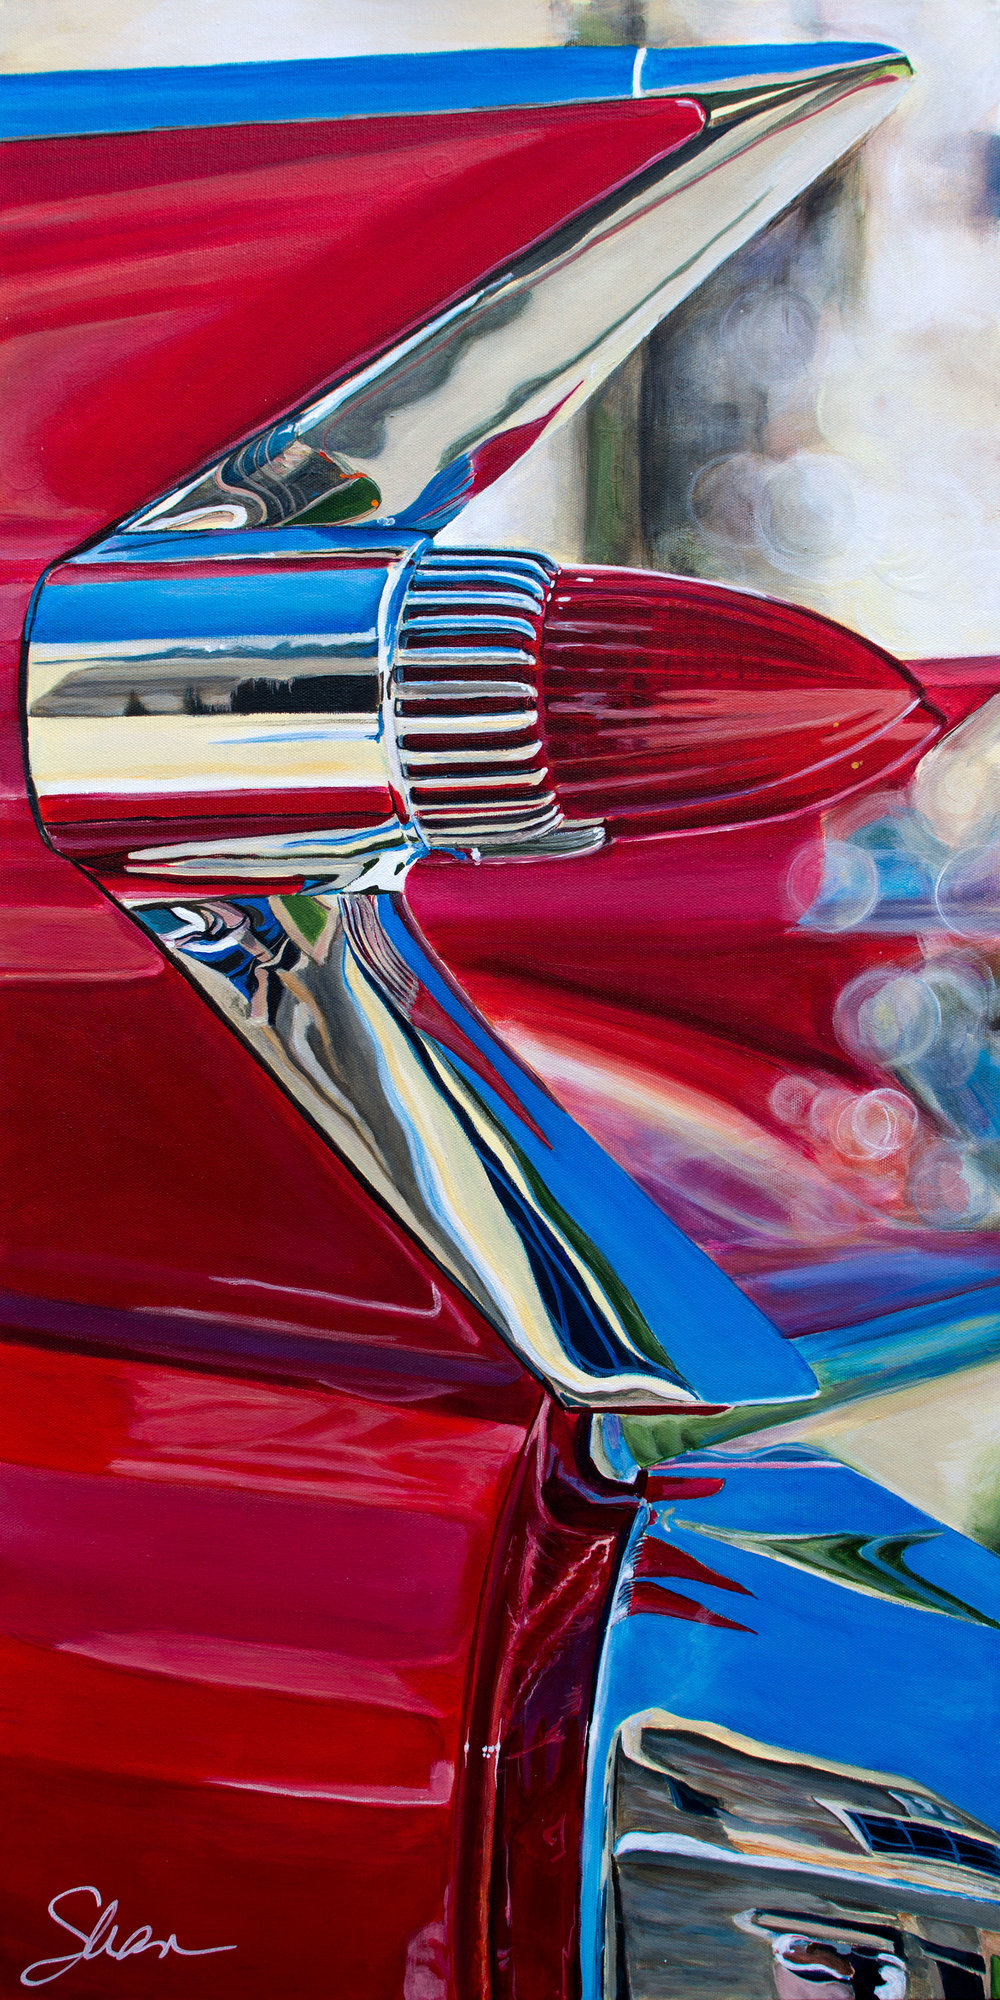 Shannon Fannin │  1959 Cadillac Coupe deVille Red  │ Acrylic on Canvas │ 36 x 24 inches or 91 ½ x 61 cm